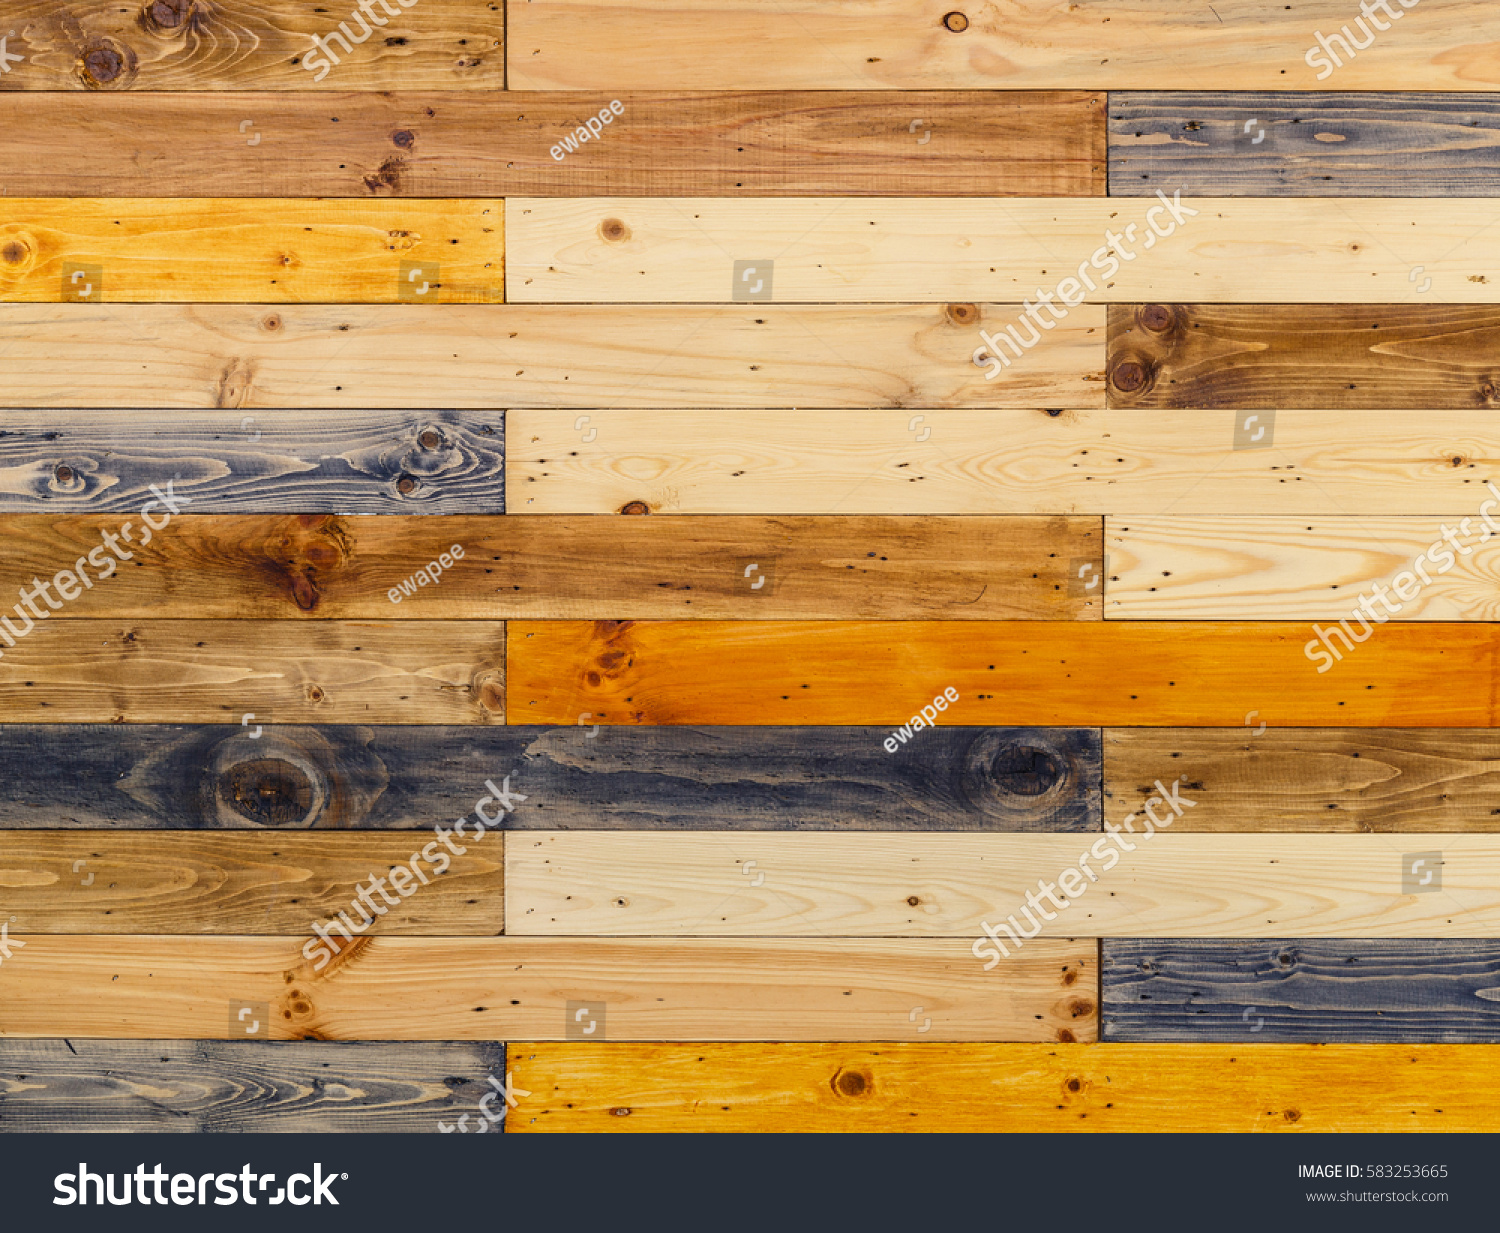 Wooden Panels Wall Background Different Types Stock Photo ...